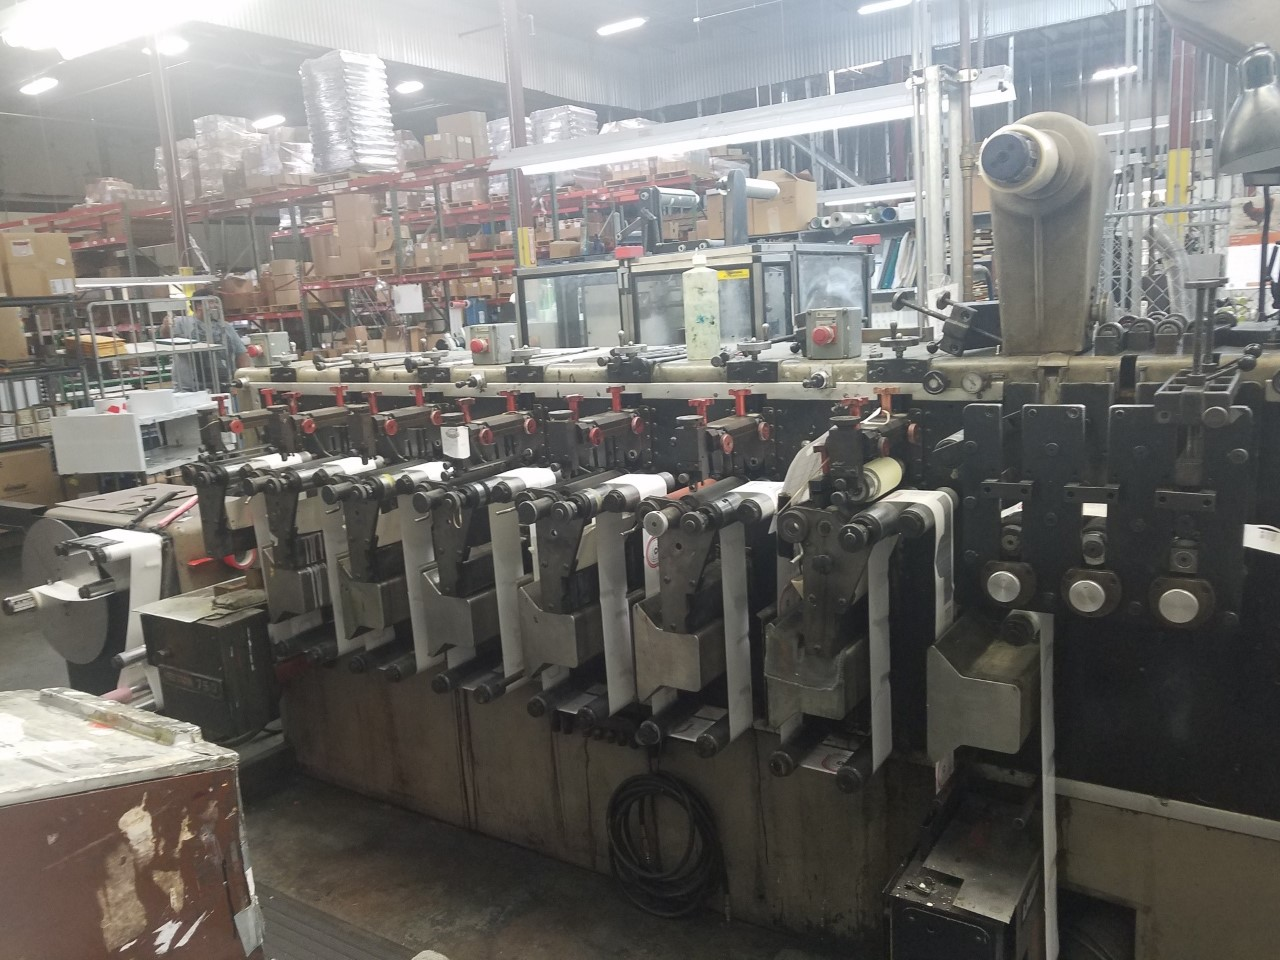 Webtron 750 - Used Flexo Printing Presses and Used Flexographic Equipment-0